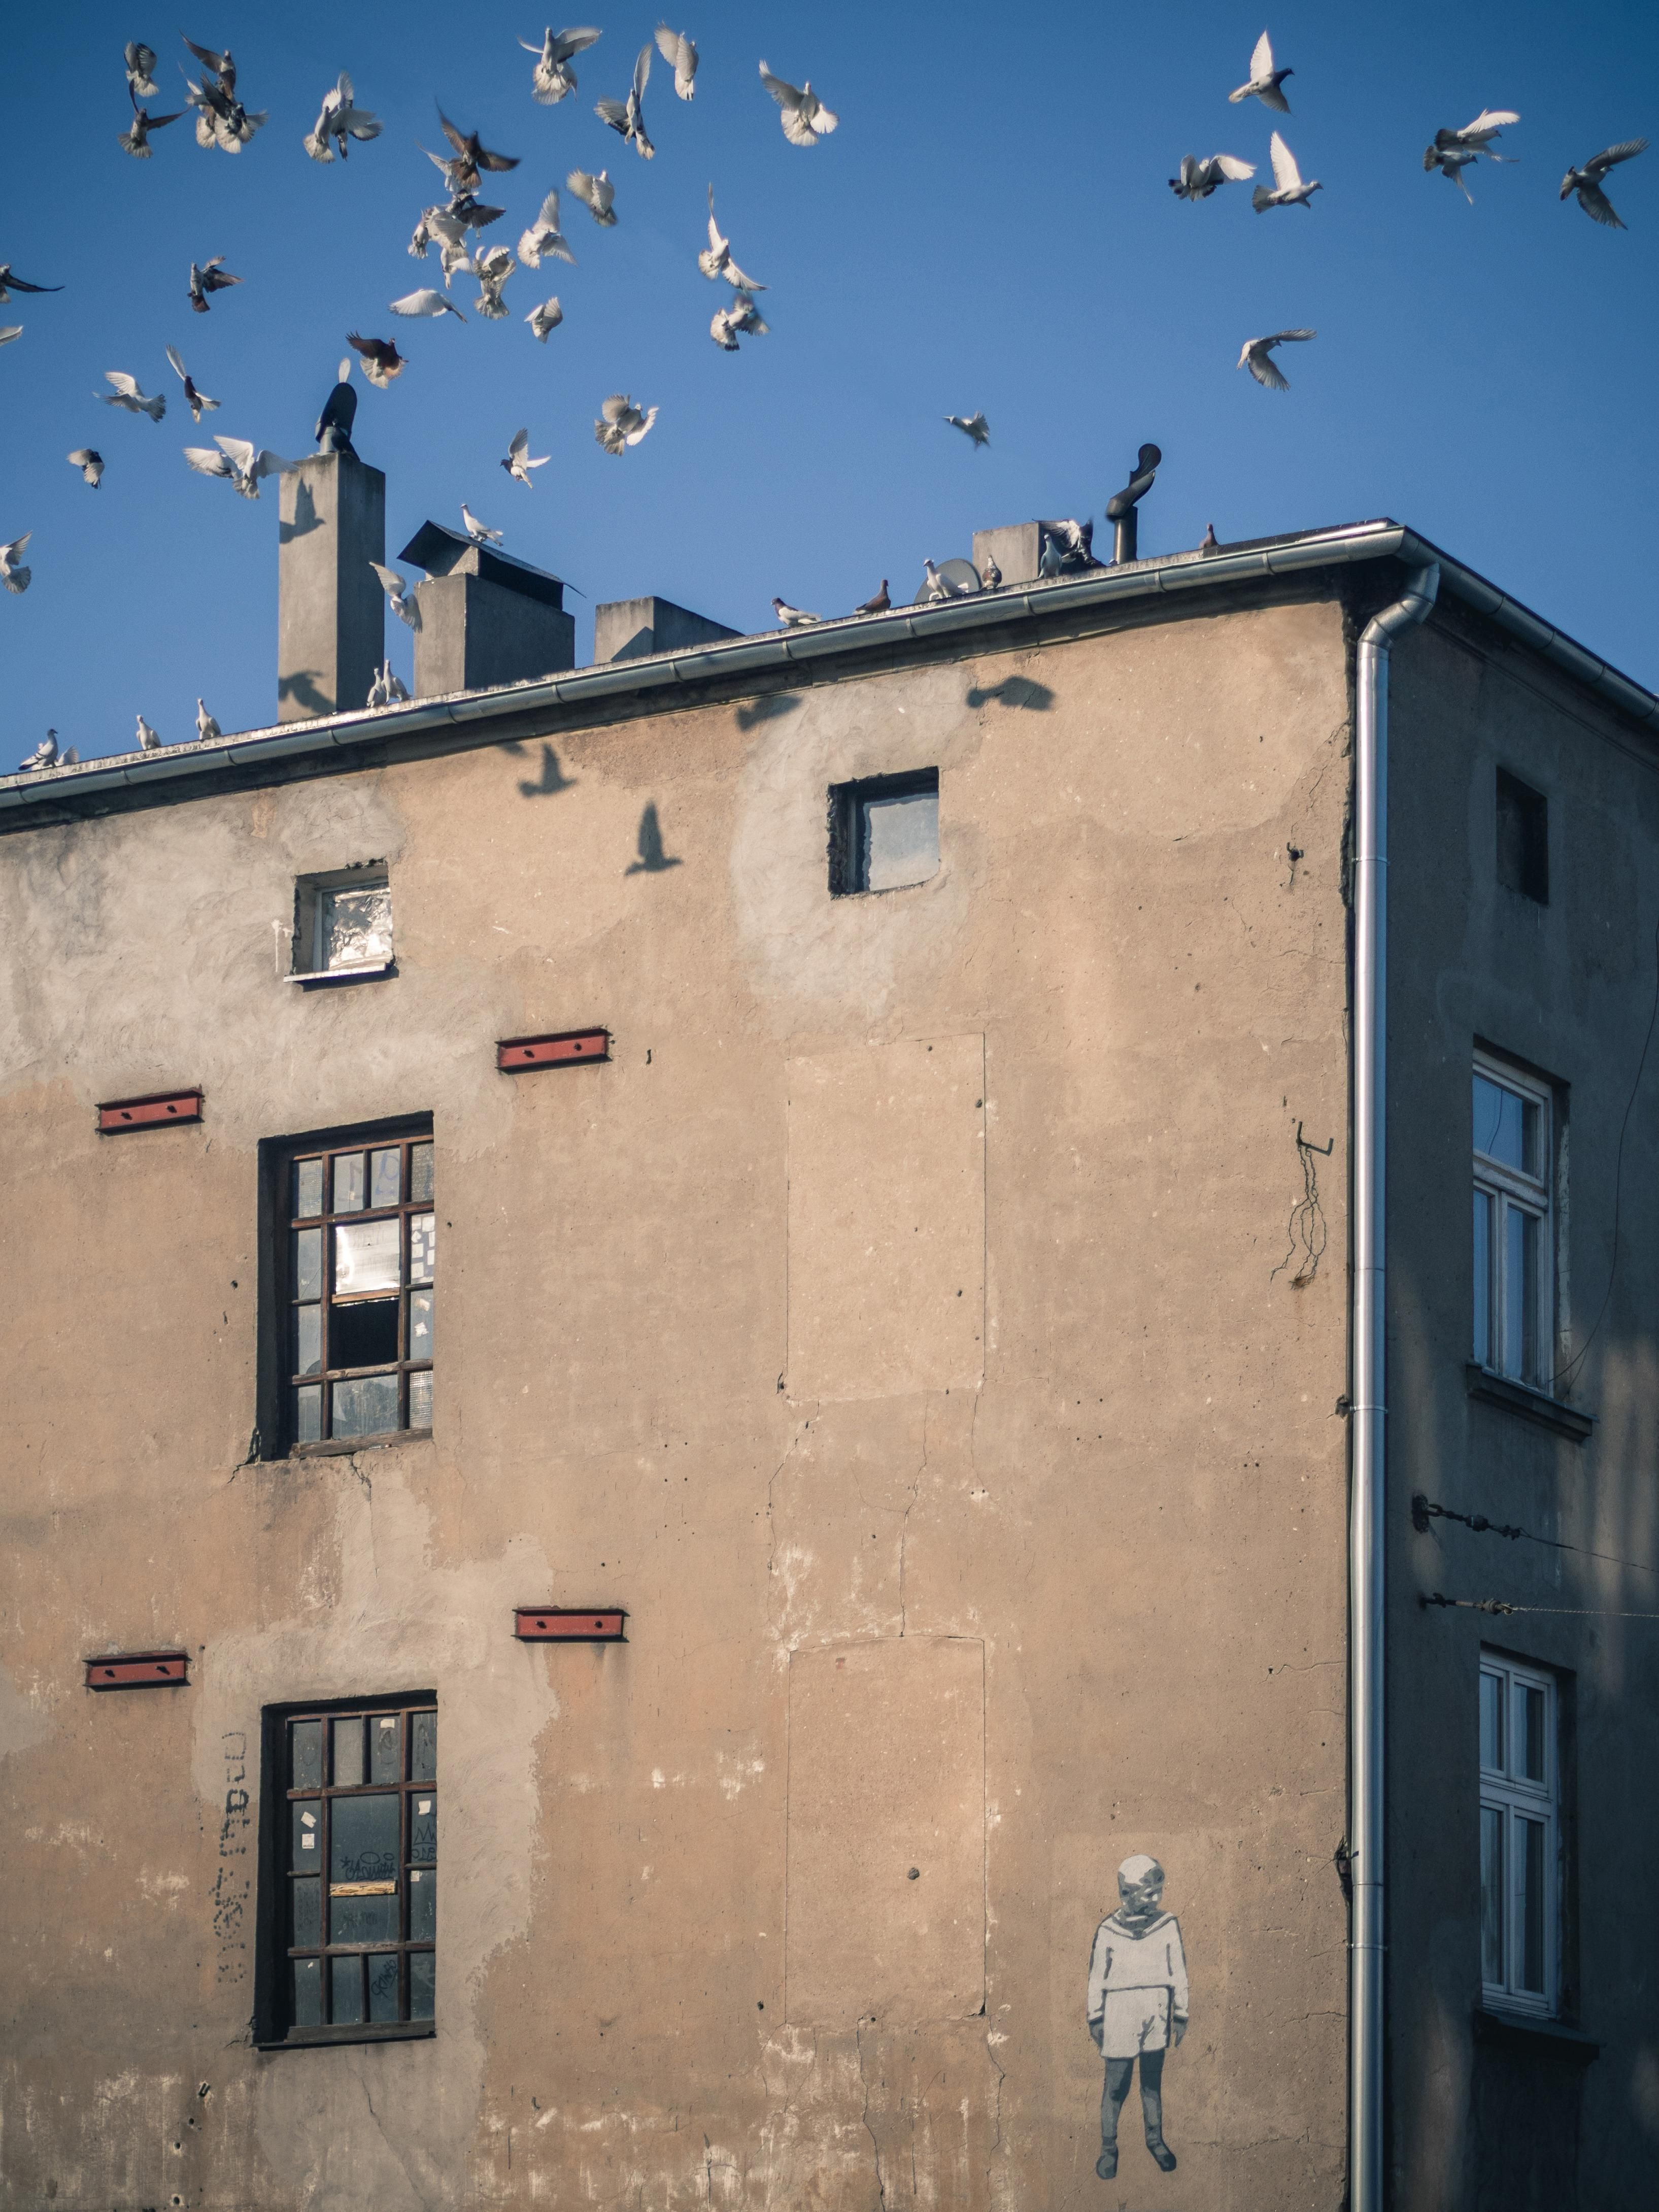 ITAP of tenement with memorial mural in my home town [Bałuty Łódź Poland]#PHOTO #CAPTURE #NATURE #INCREDIBLE